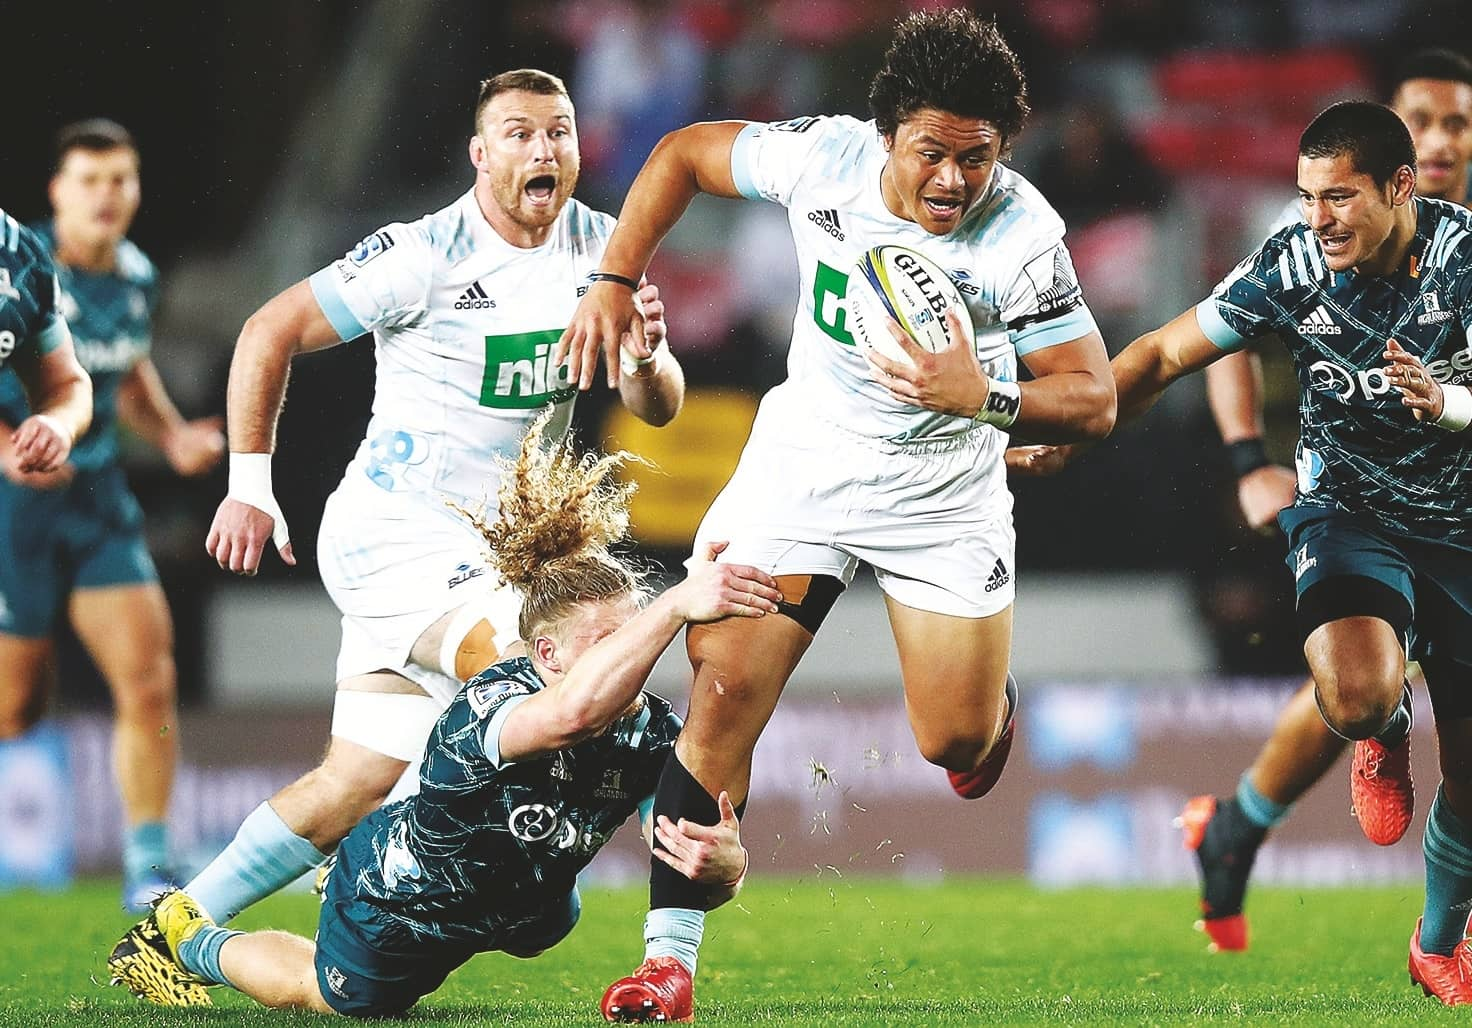 Sevens must innovate or it will die warns Friday